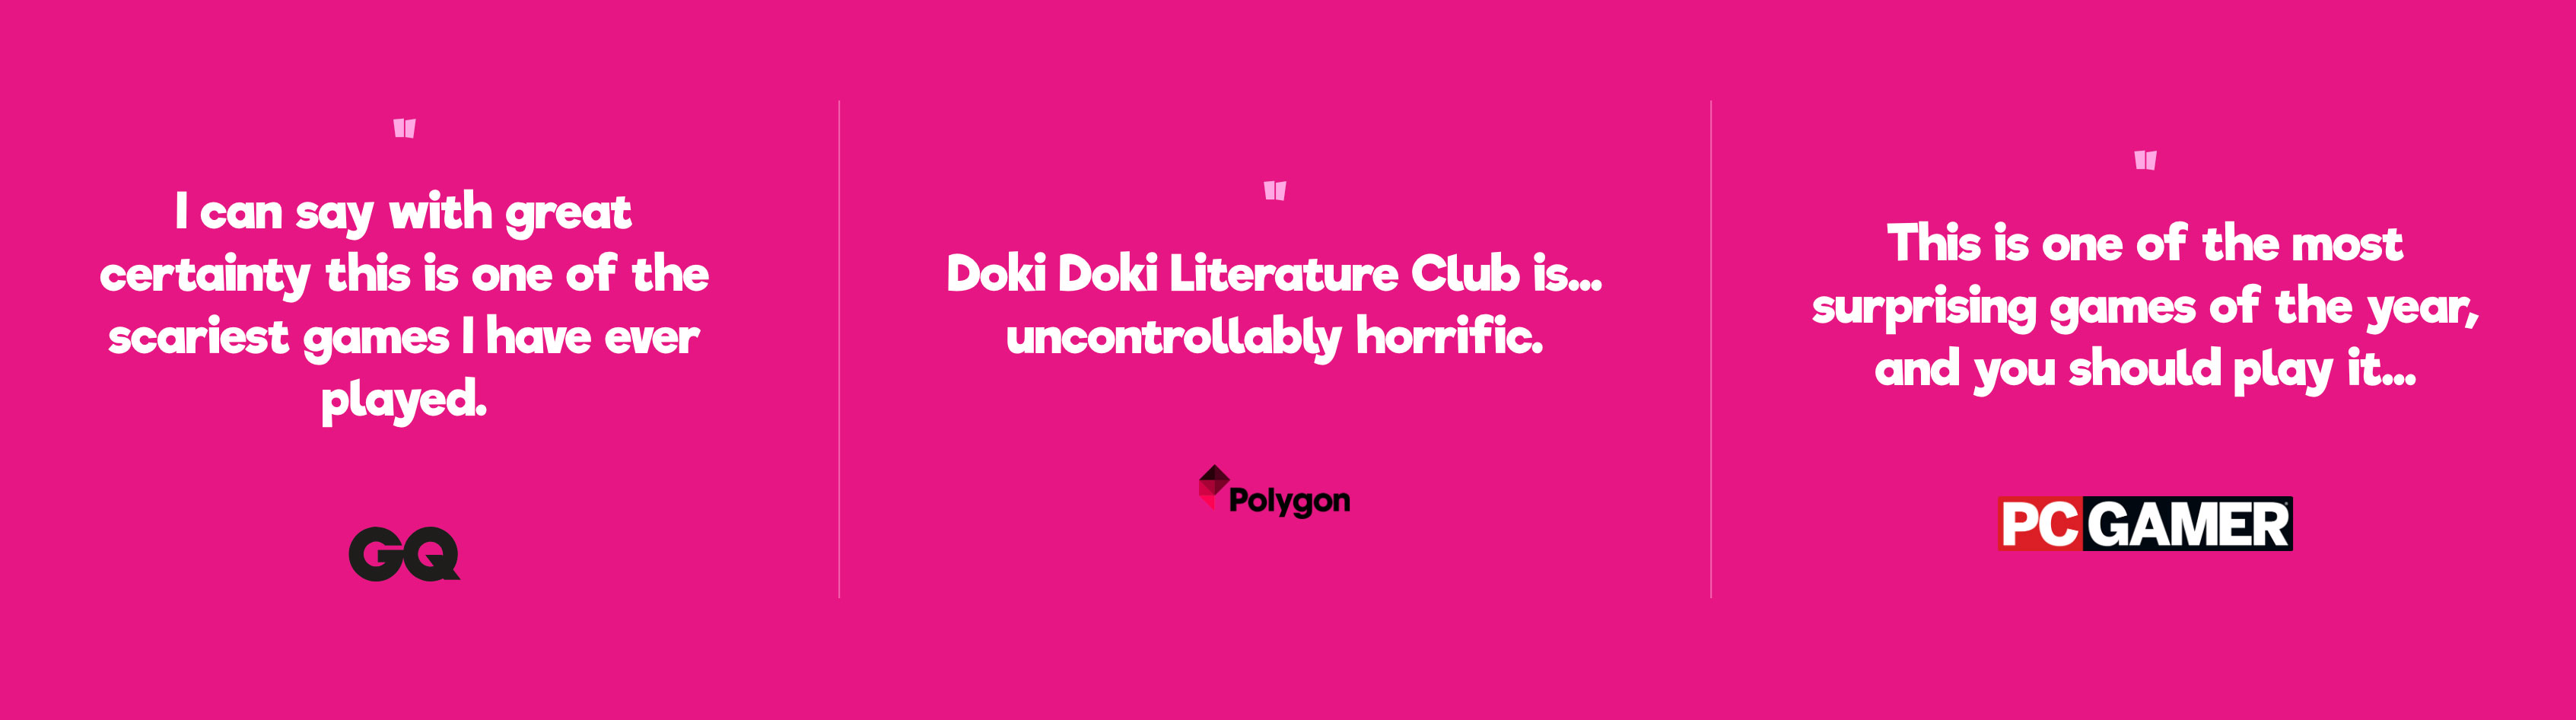 Three quotes from fans of Doki Doki Litterature Club